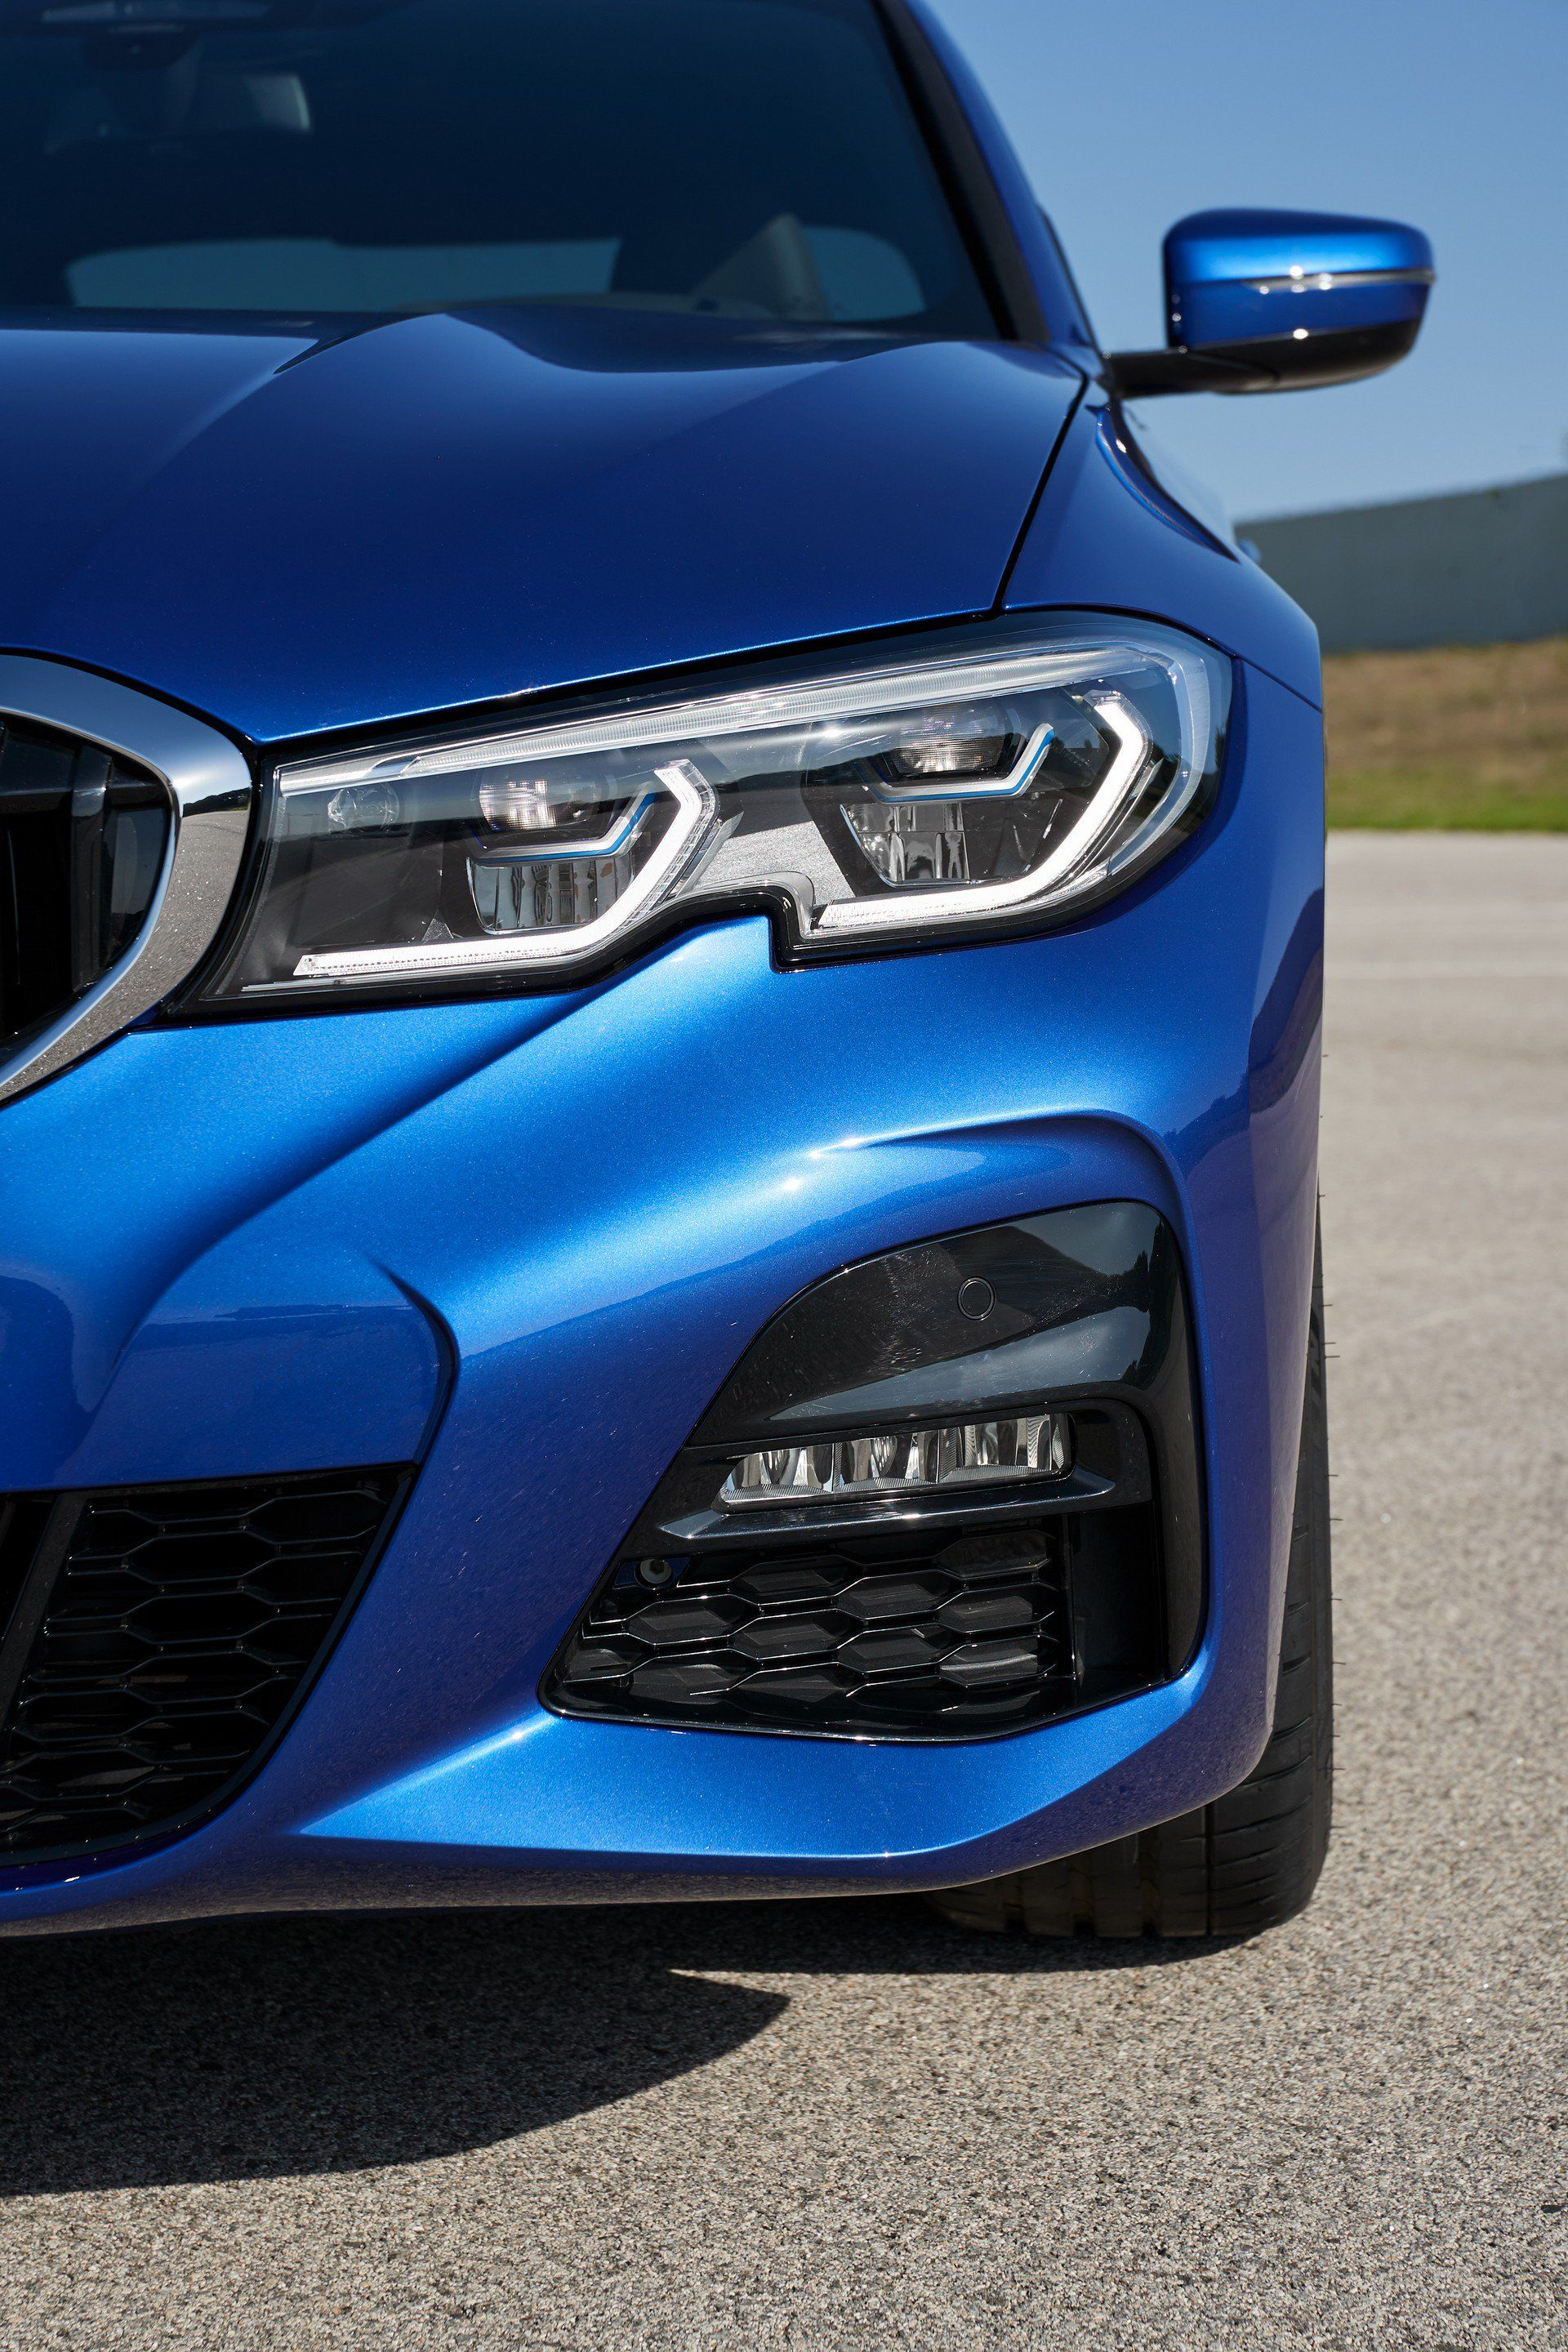 First 2019 Bmw 3 Series Reviews Are Out Plus 300 Photos Carscoops Bmw 3 Series Bmw Bmw Cars